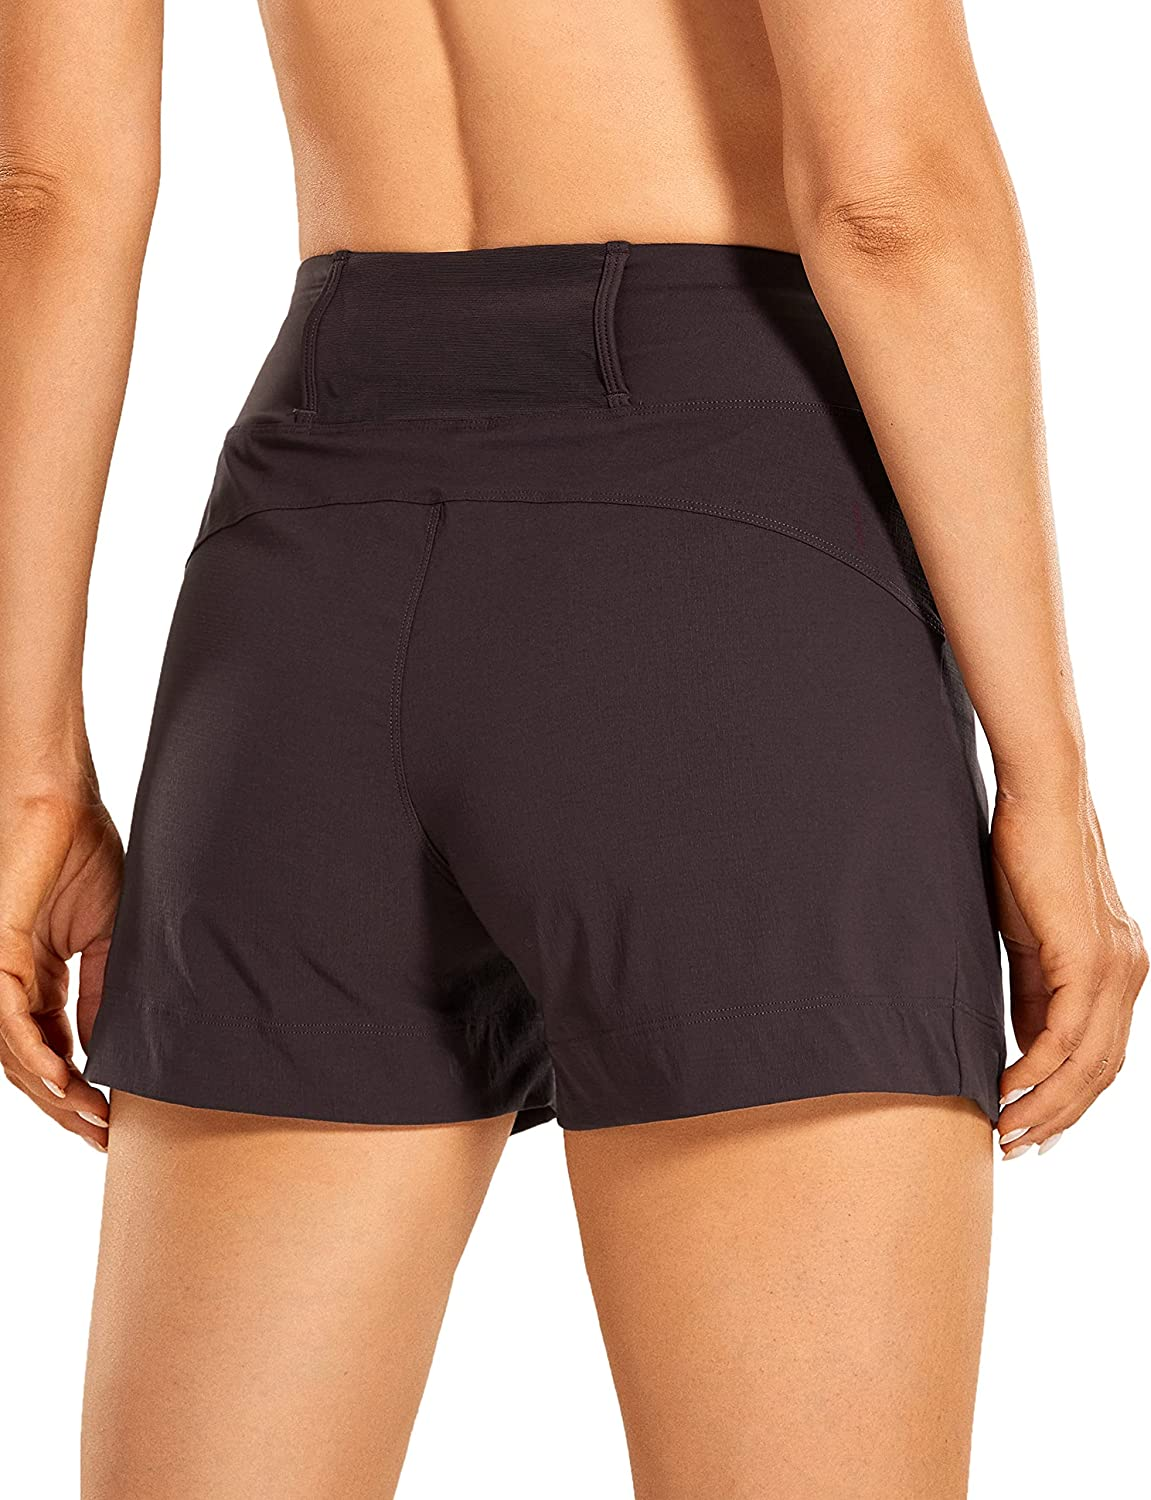 CRZ YOGA Max 74% OFF Women's Lightweight Hiking Outdoor Spring new work one after another Shorts Quick- Travel